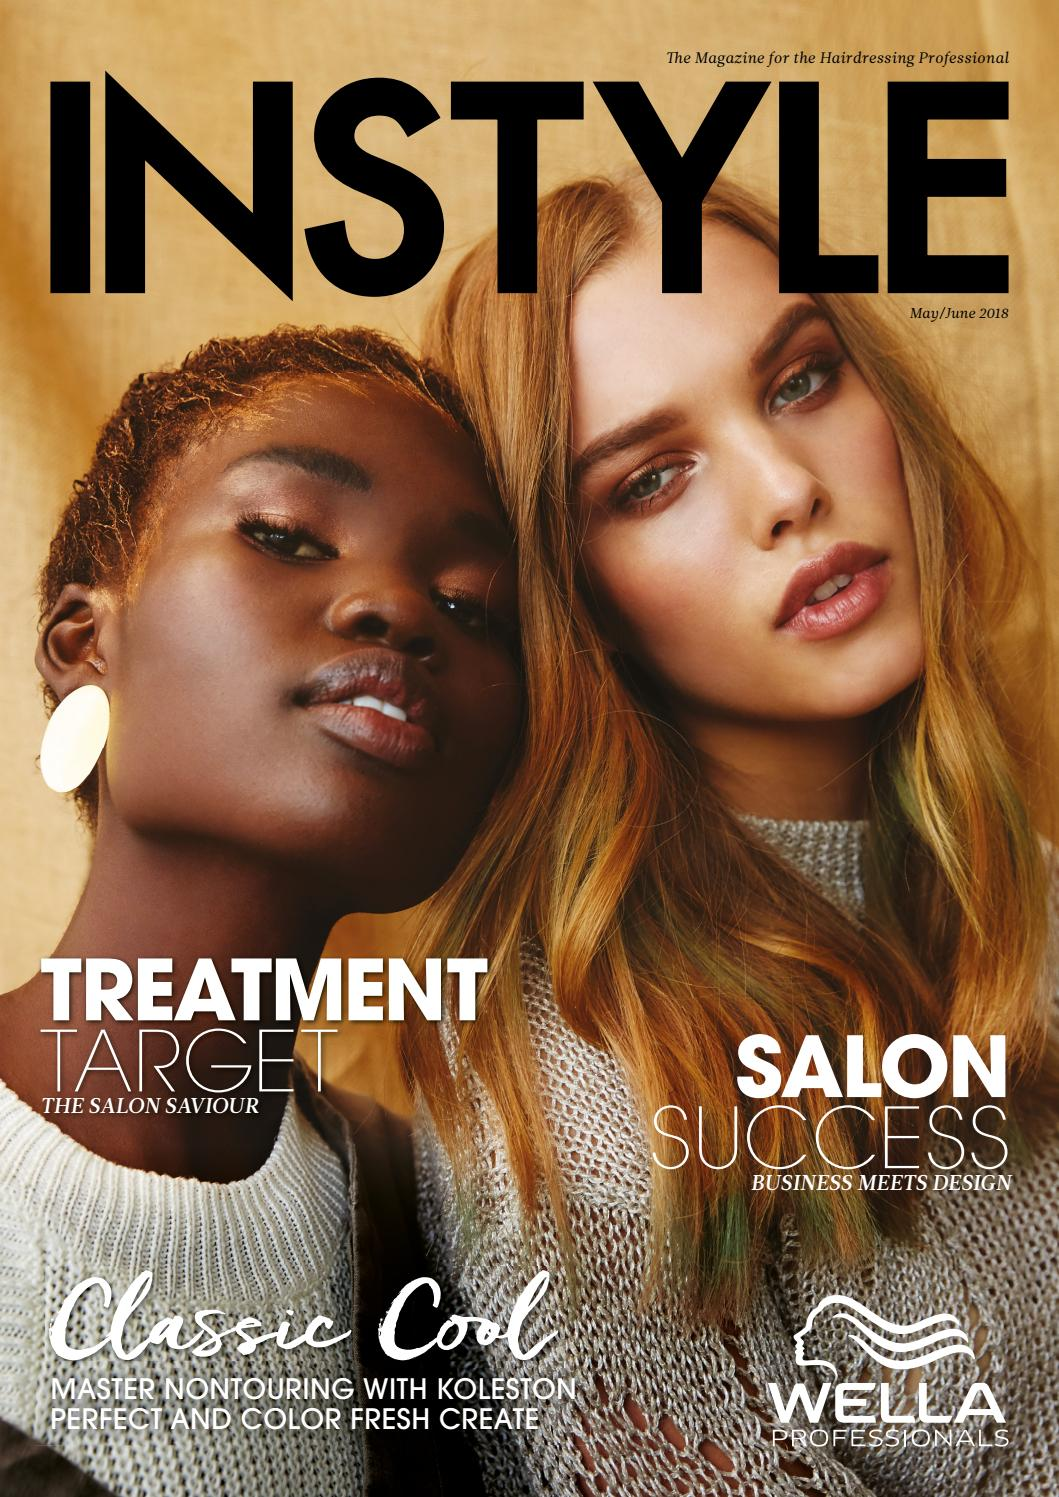 a7283294329 INSTYLE May June 2018 by The Intermedia Group - issuu